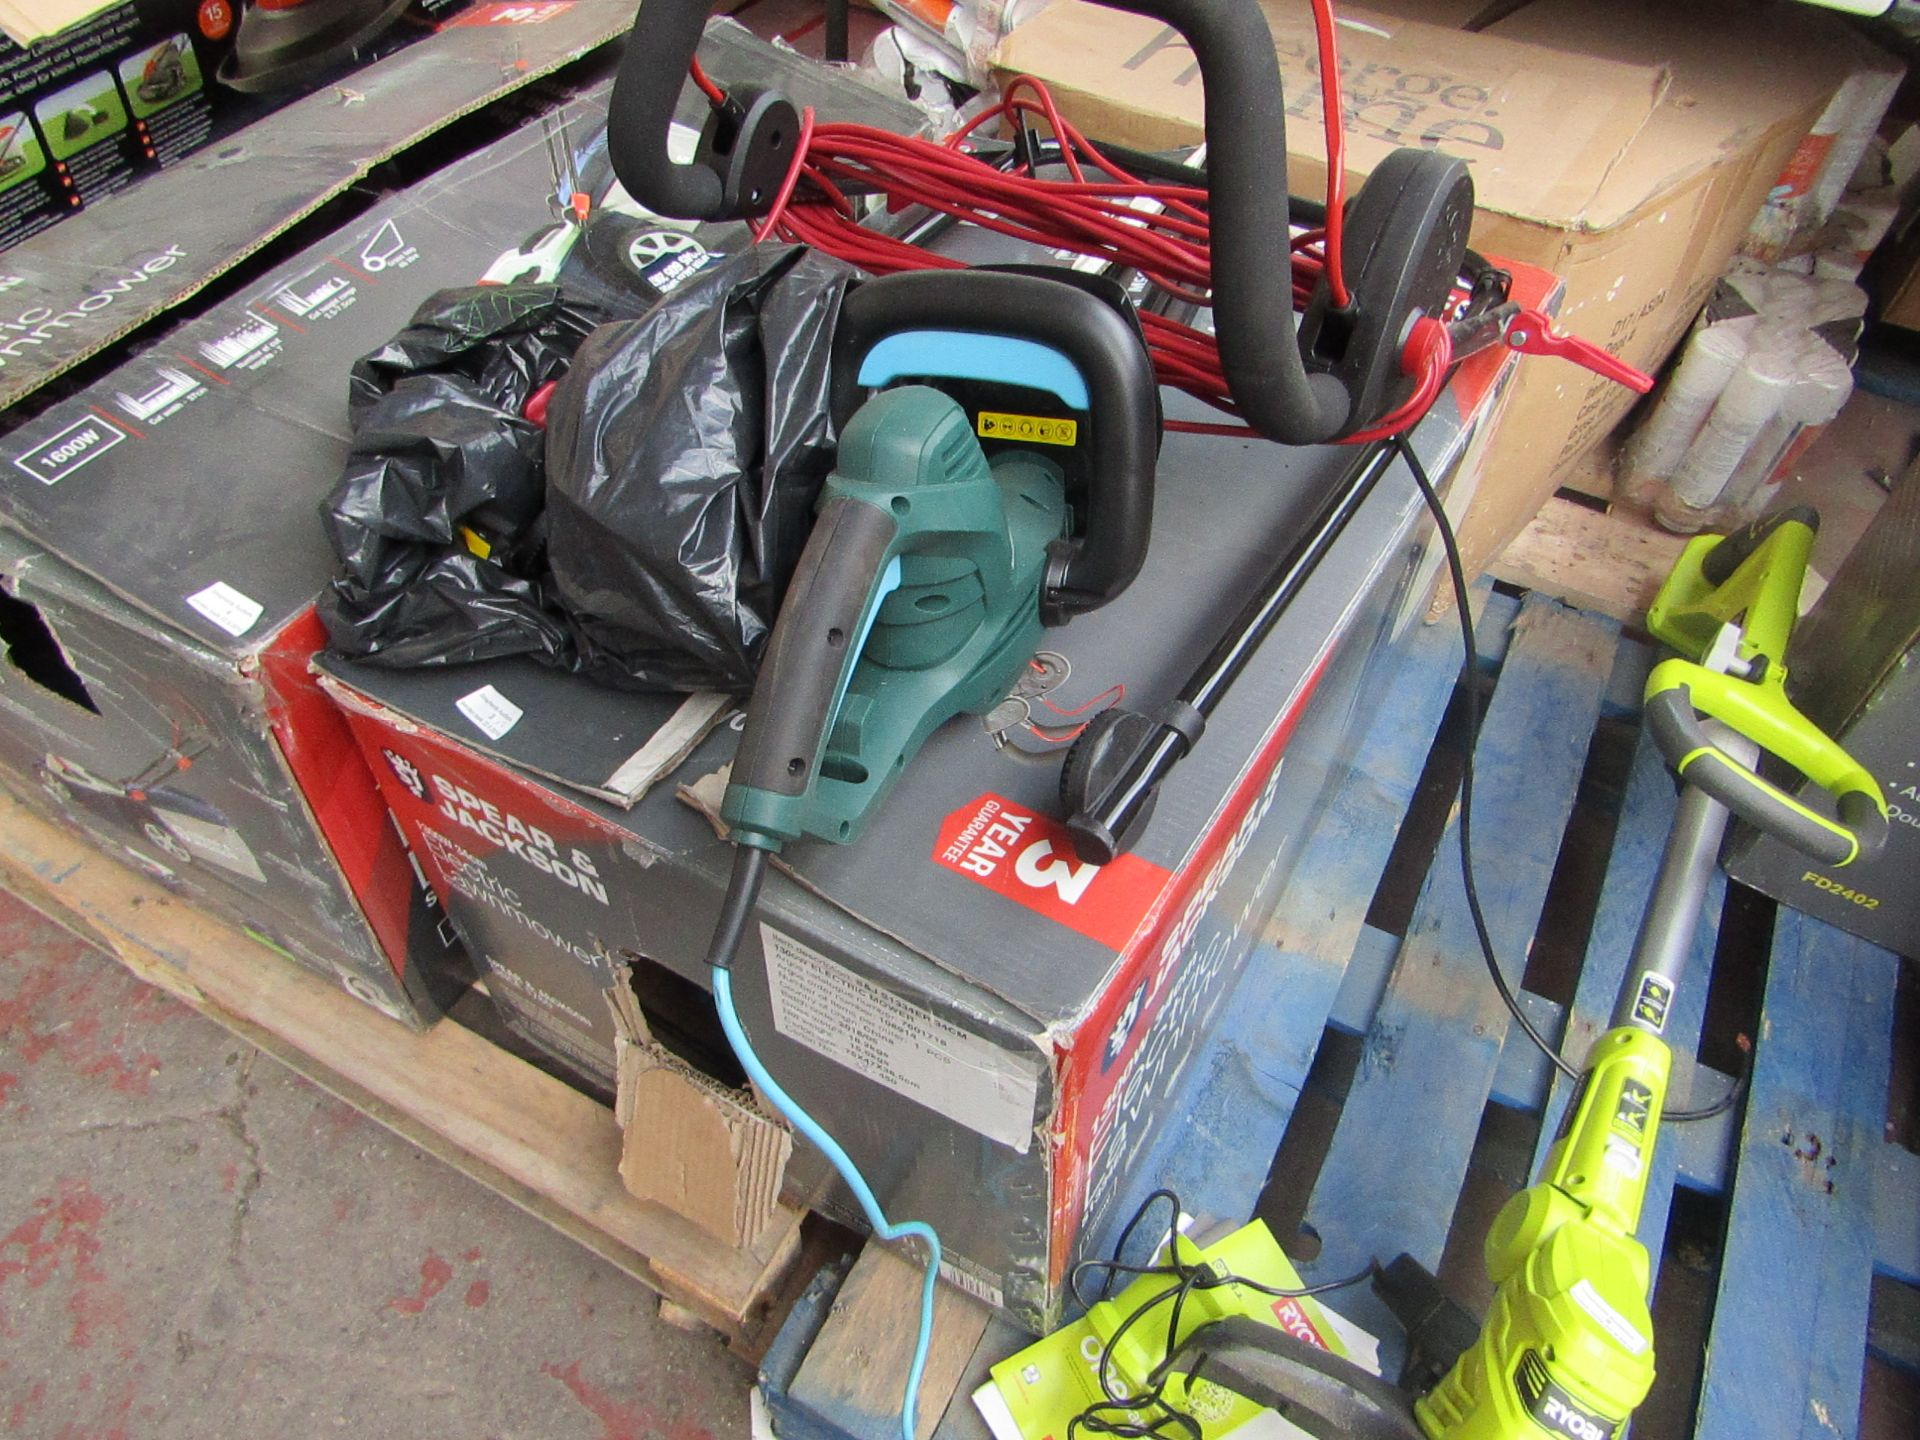 Lotto 3 - 2x Items being a Spear and Jackson 1300w Electric Lawn mower and a McGregor electric hedge